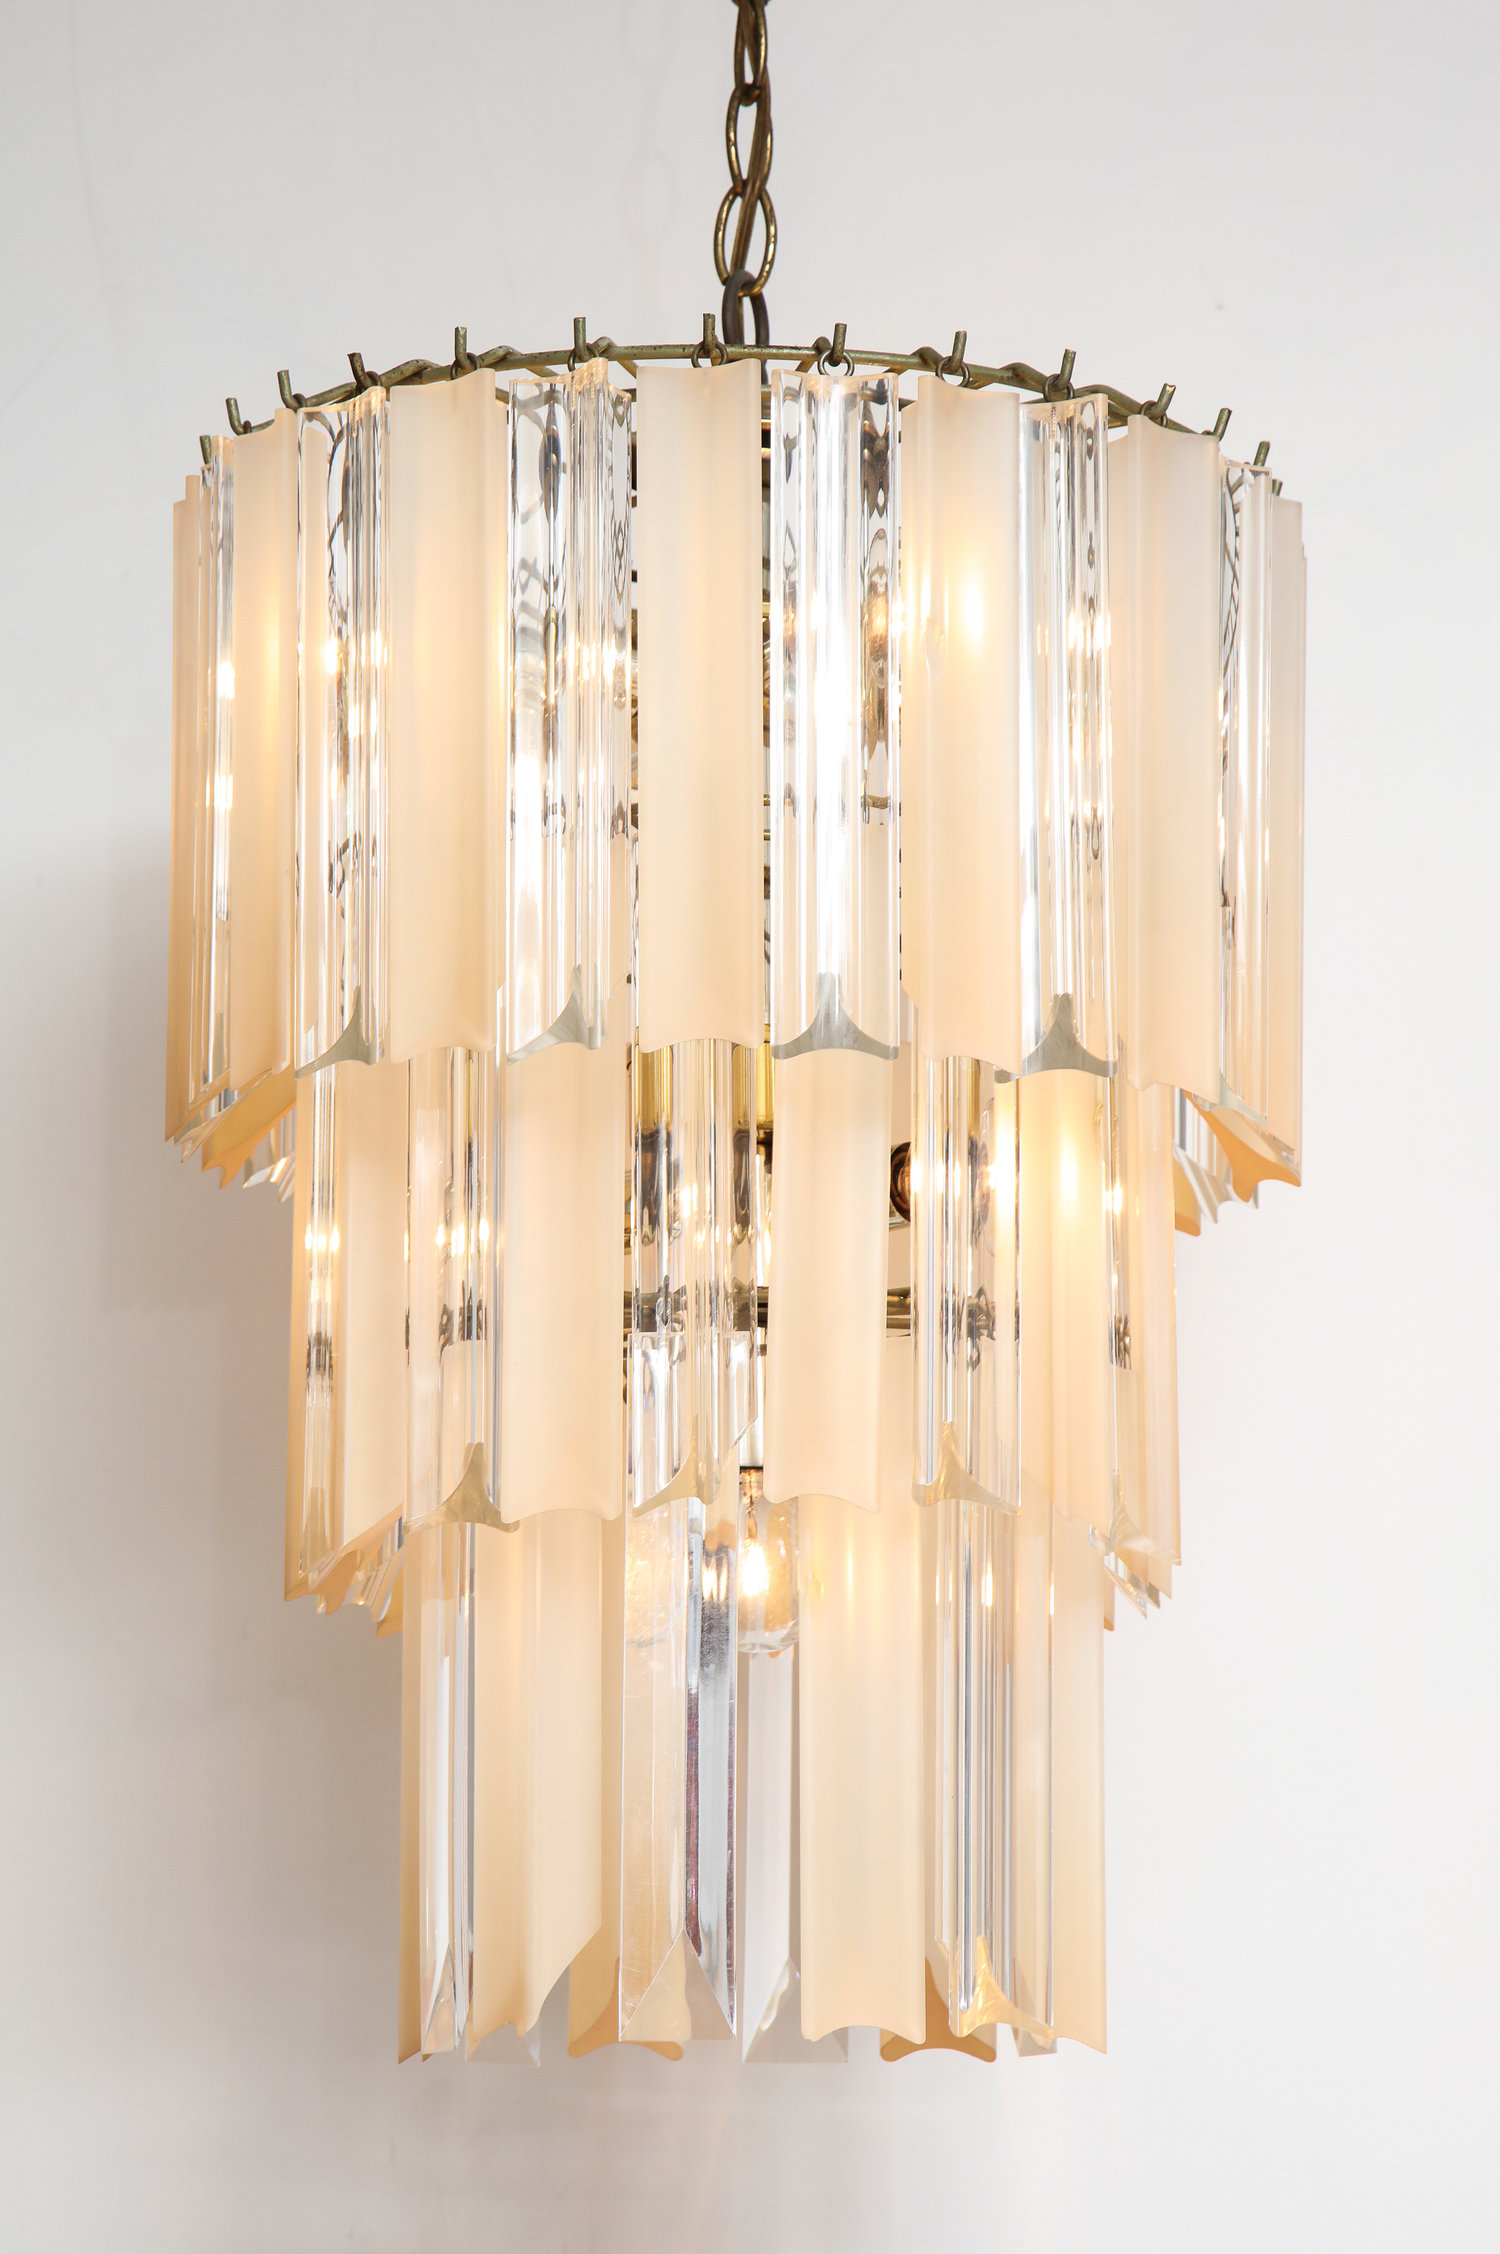 Camer chandelier with clear and peachy gold lucite triedre rods